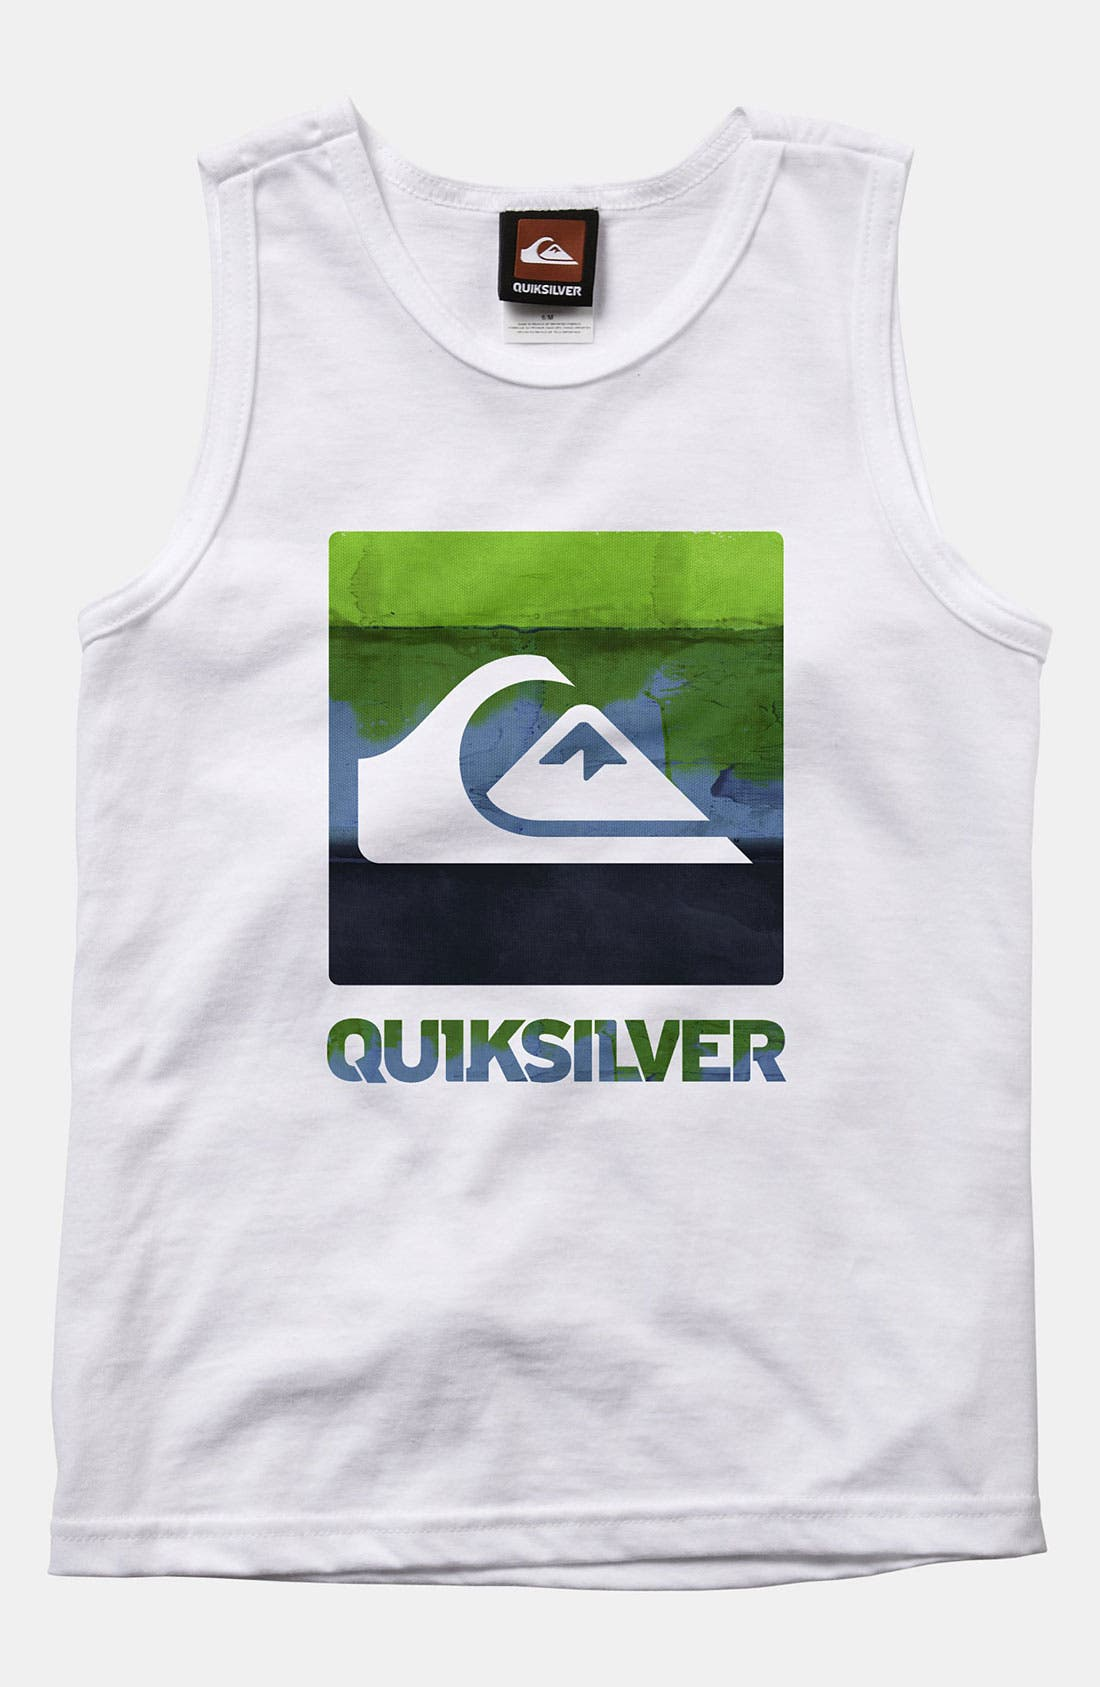 Alternate Image 1 Selected - Quiksilver 'Chaos' Tank Top (Little Boys)